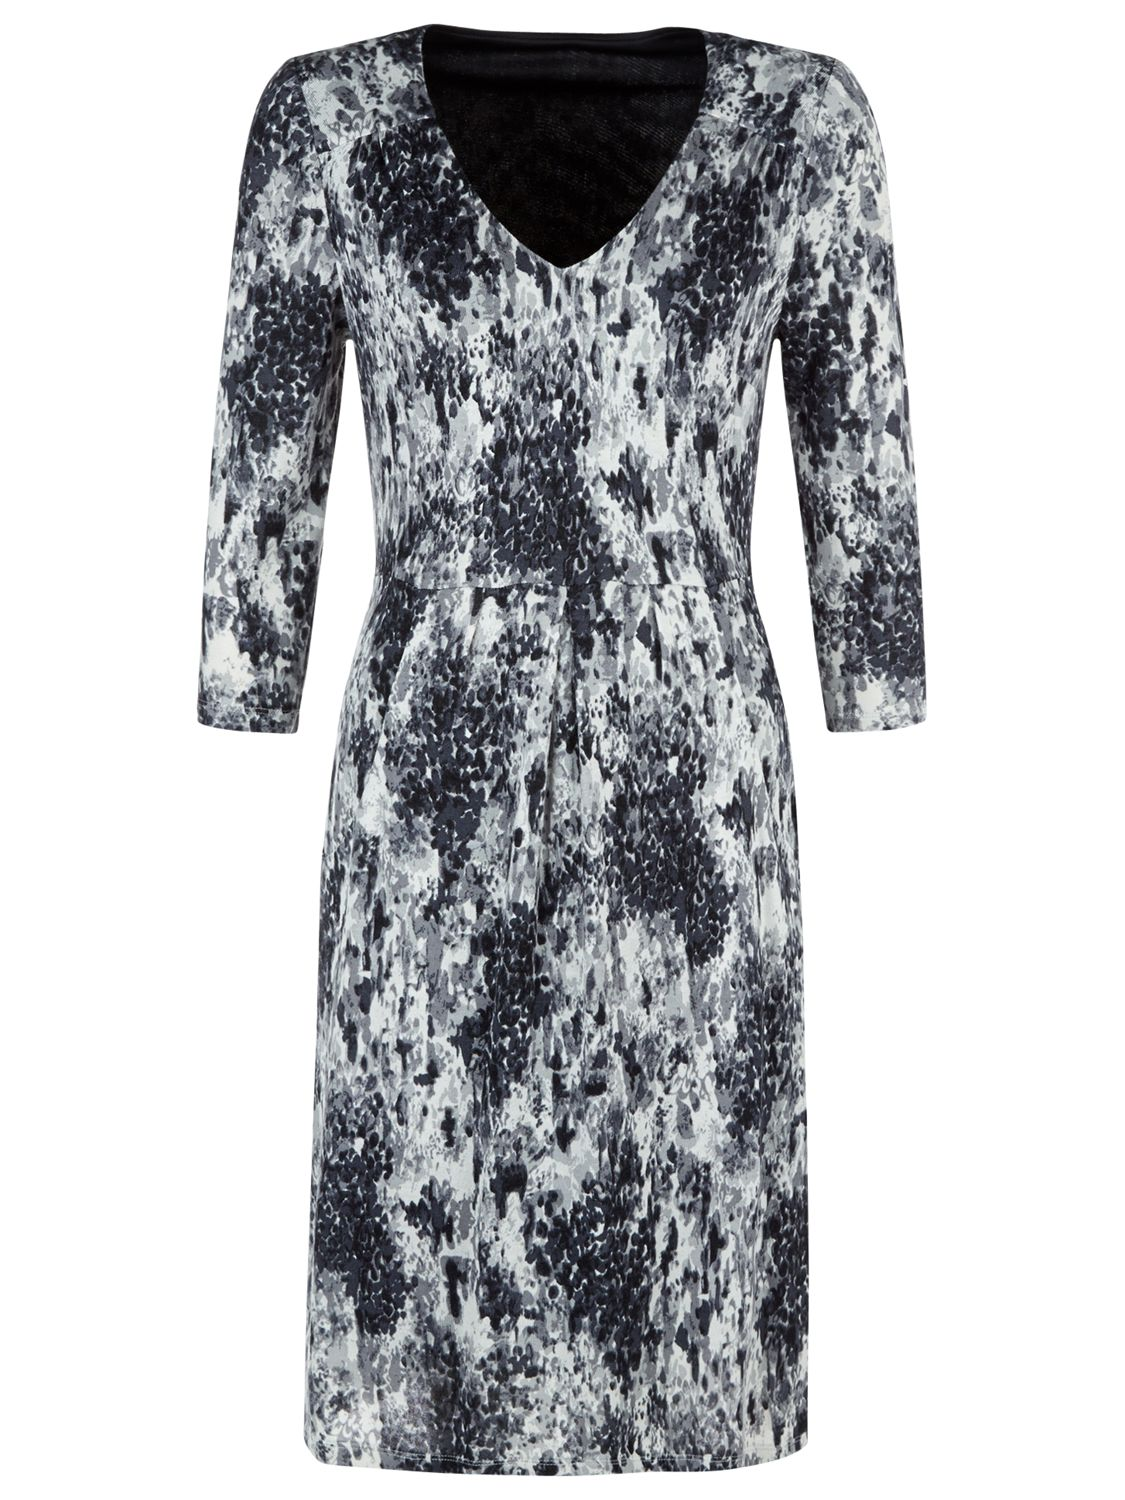 kaliko vintage floral dress multi grey, kaliko, vintage, floral, dress, multi, grey, 18|8, clearance, womenswear offers, womens dresses offers, special offers, 20% off selected kaliko, women, inactive womenswear, new reductions, womens dresses, sep 14 - winterflora, 1677242